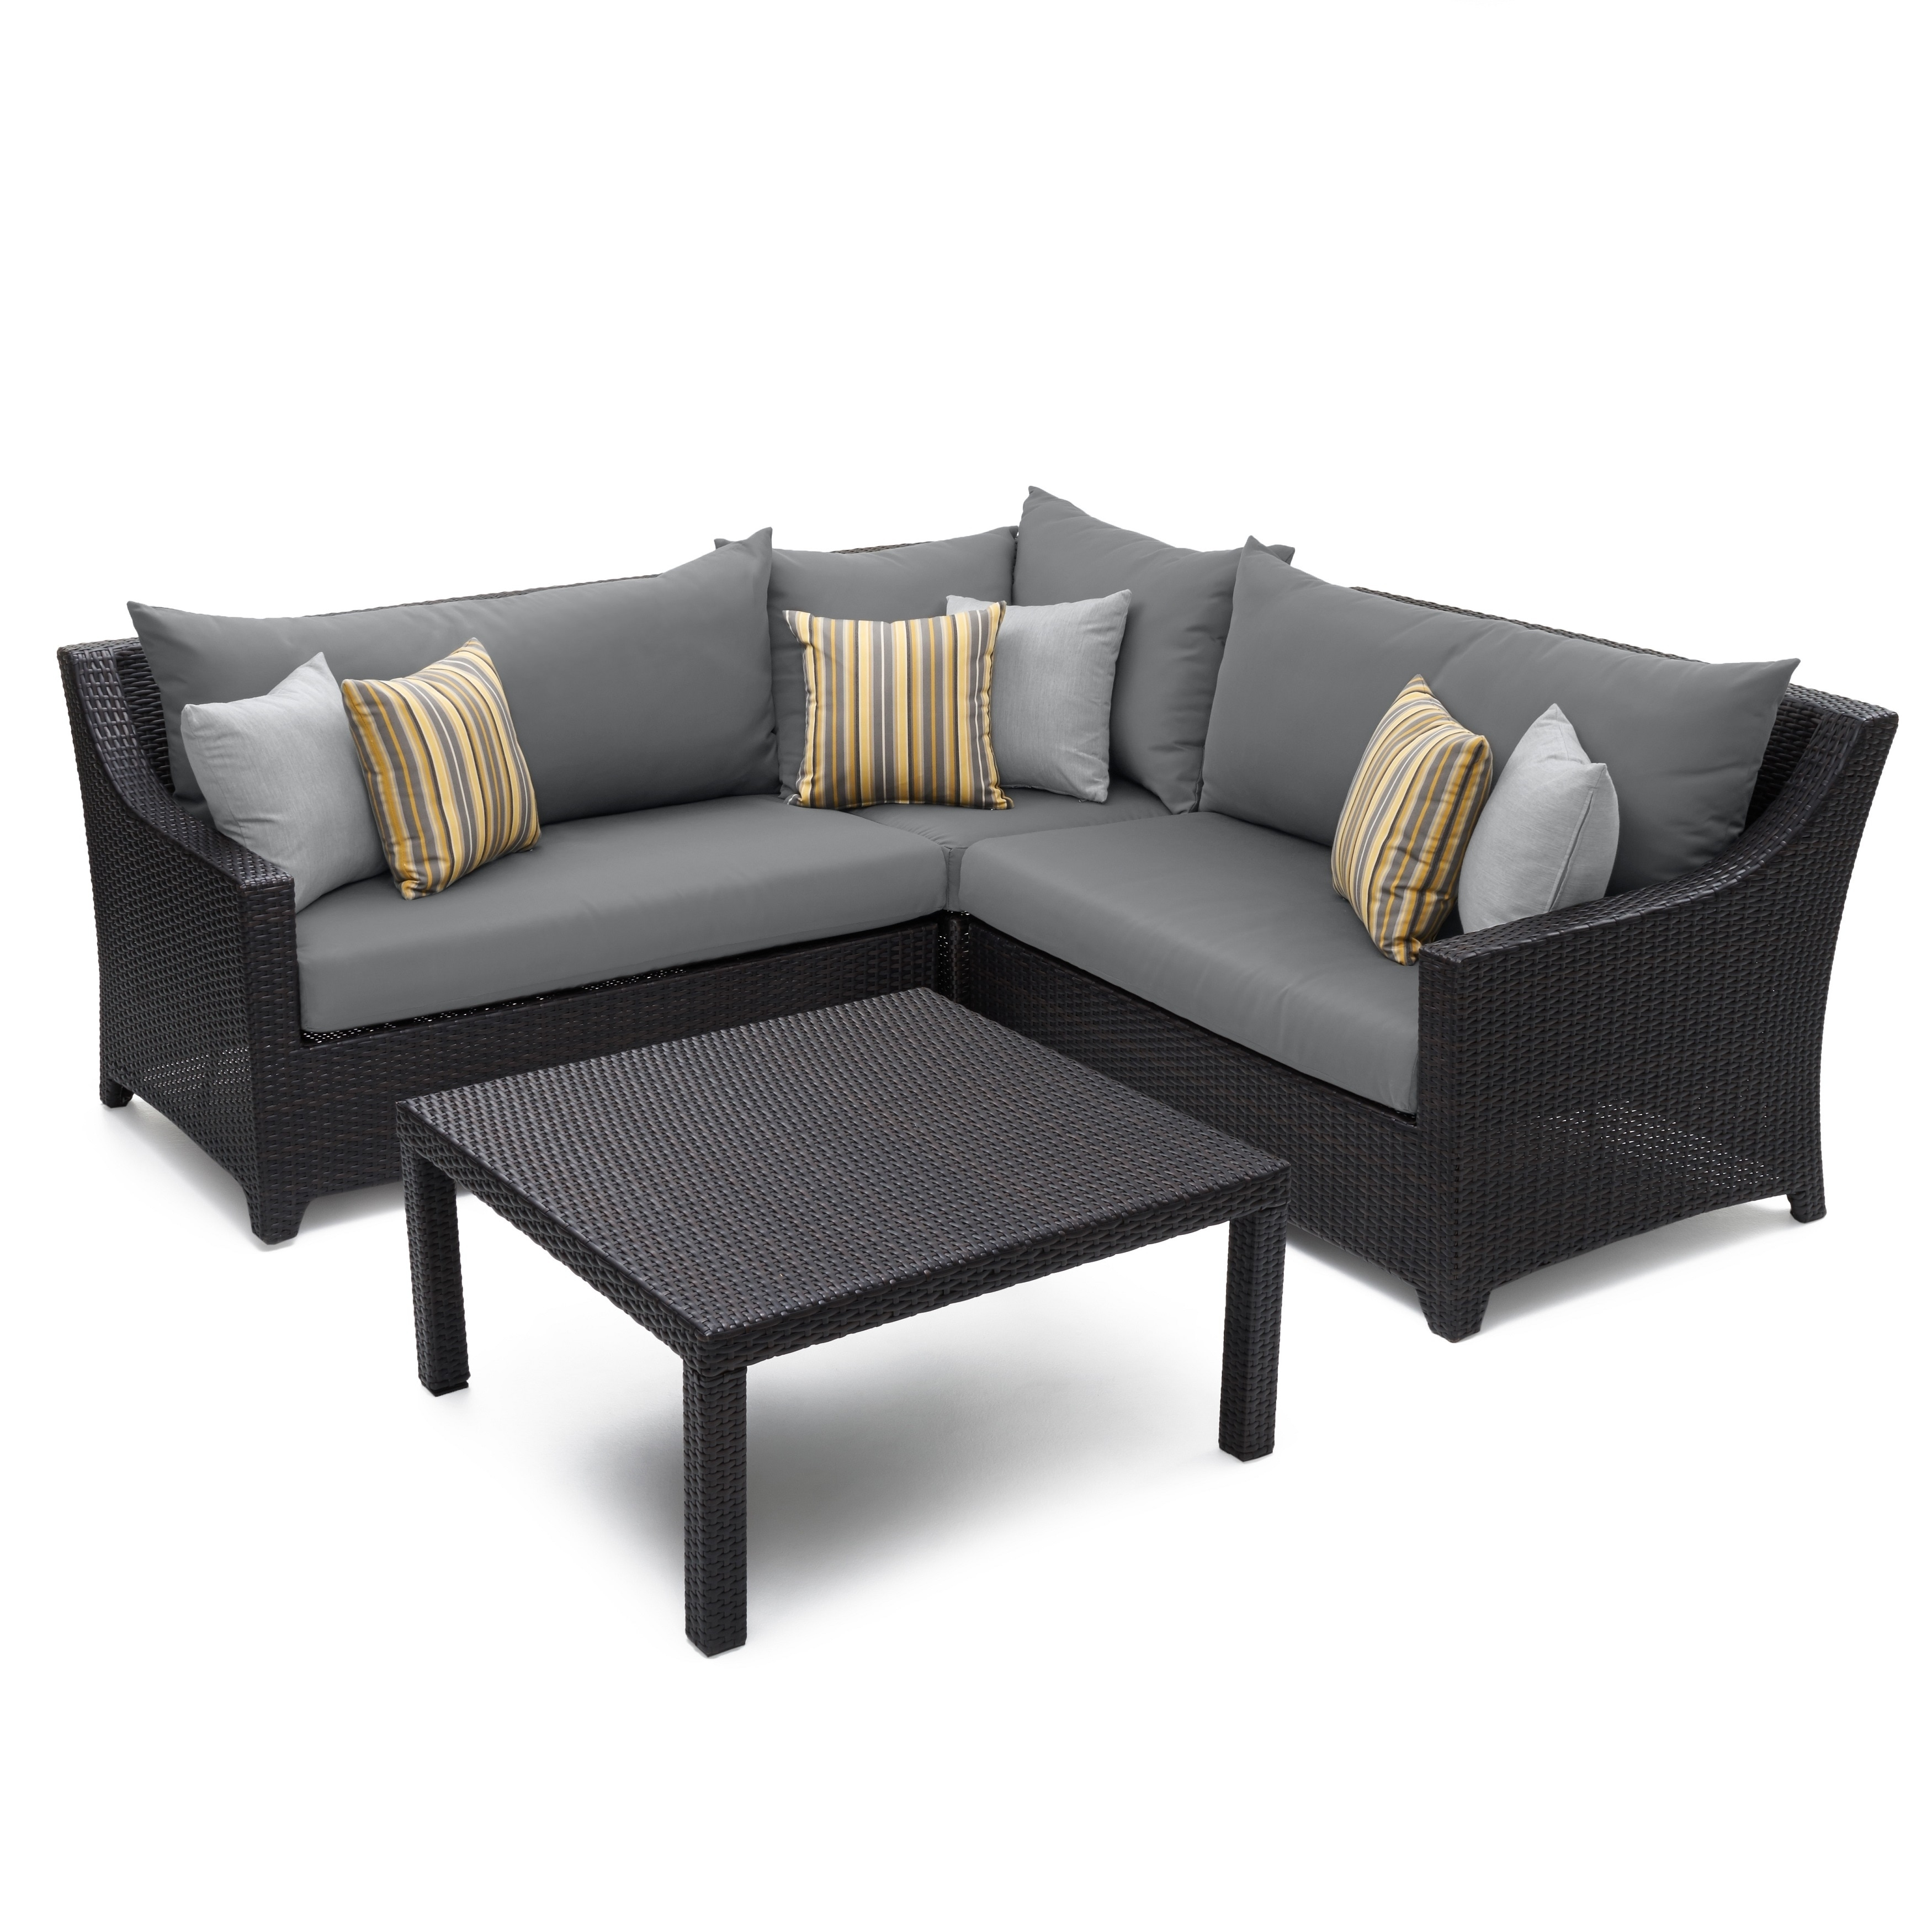 Rst brands deco 4 piece corner sectional set with charcoal grey cushions